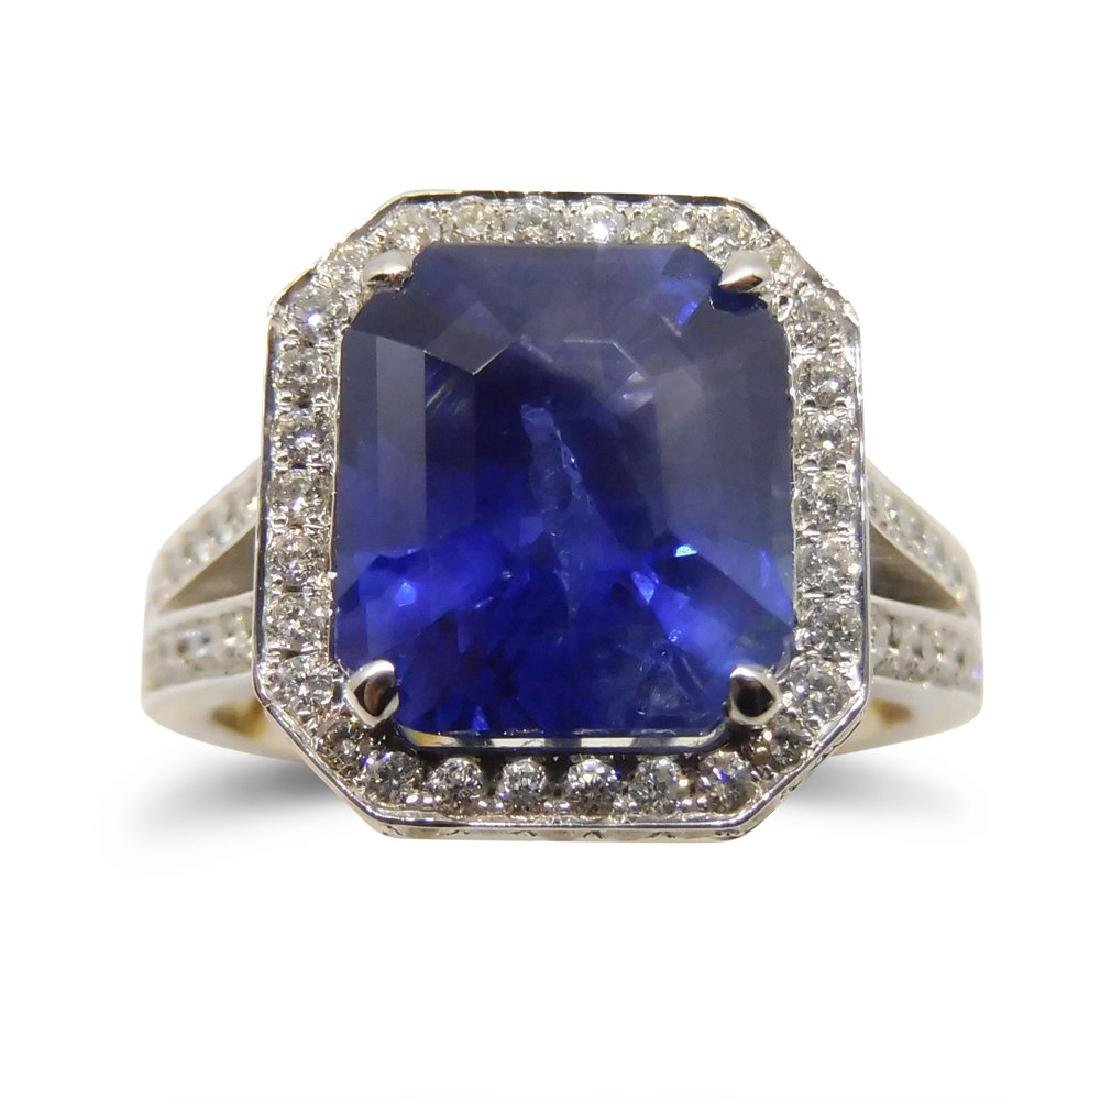 18K White Gold Unheated Sapphire Ring, 5.75ctw